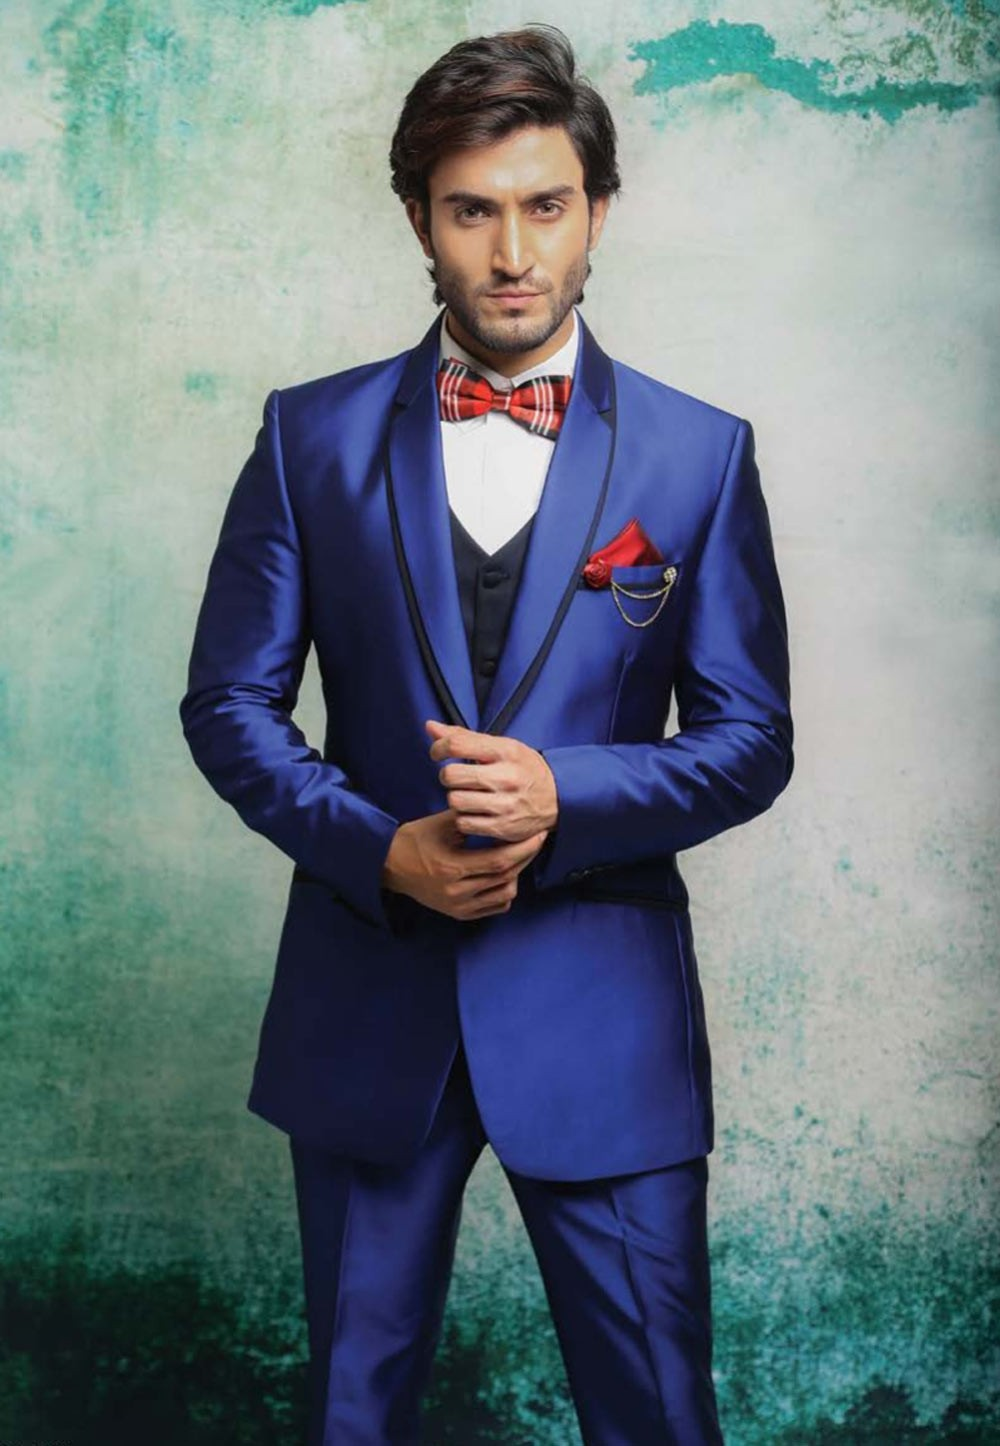 Best Wedding Suits for Men in Auspicious Looking Blue Color